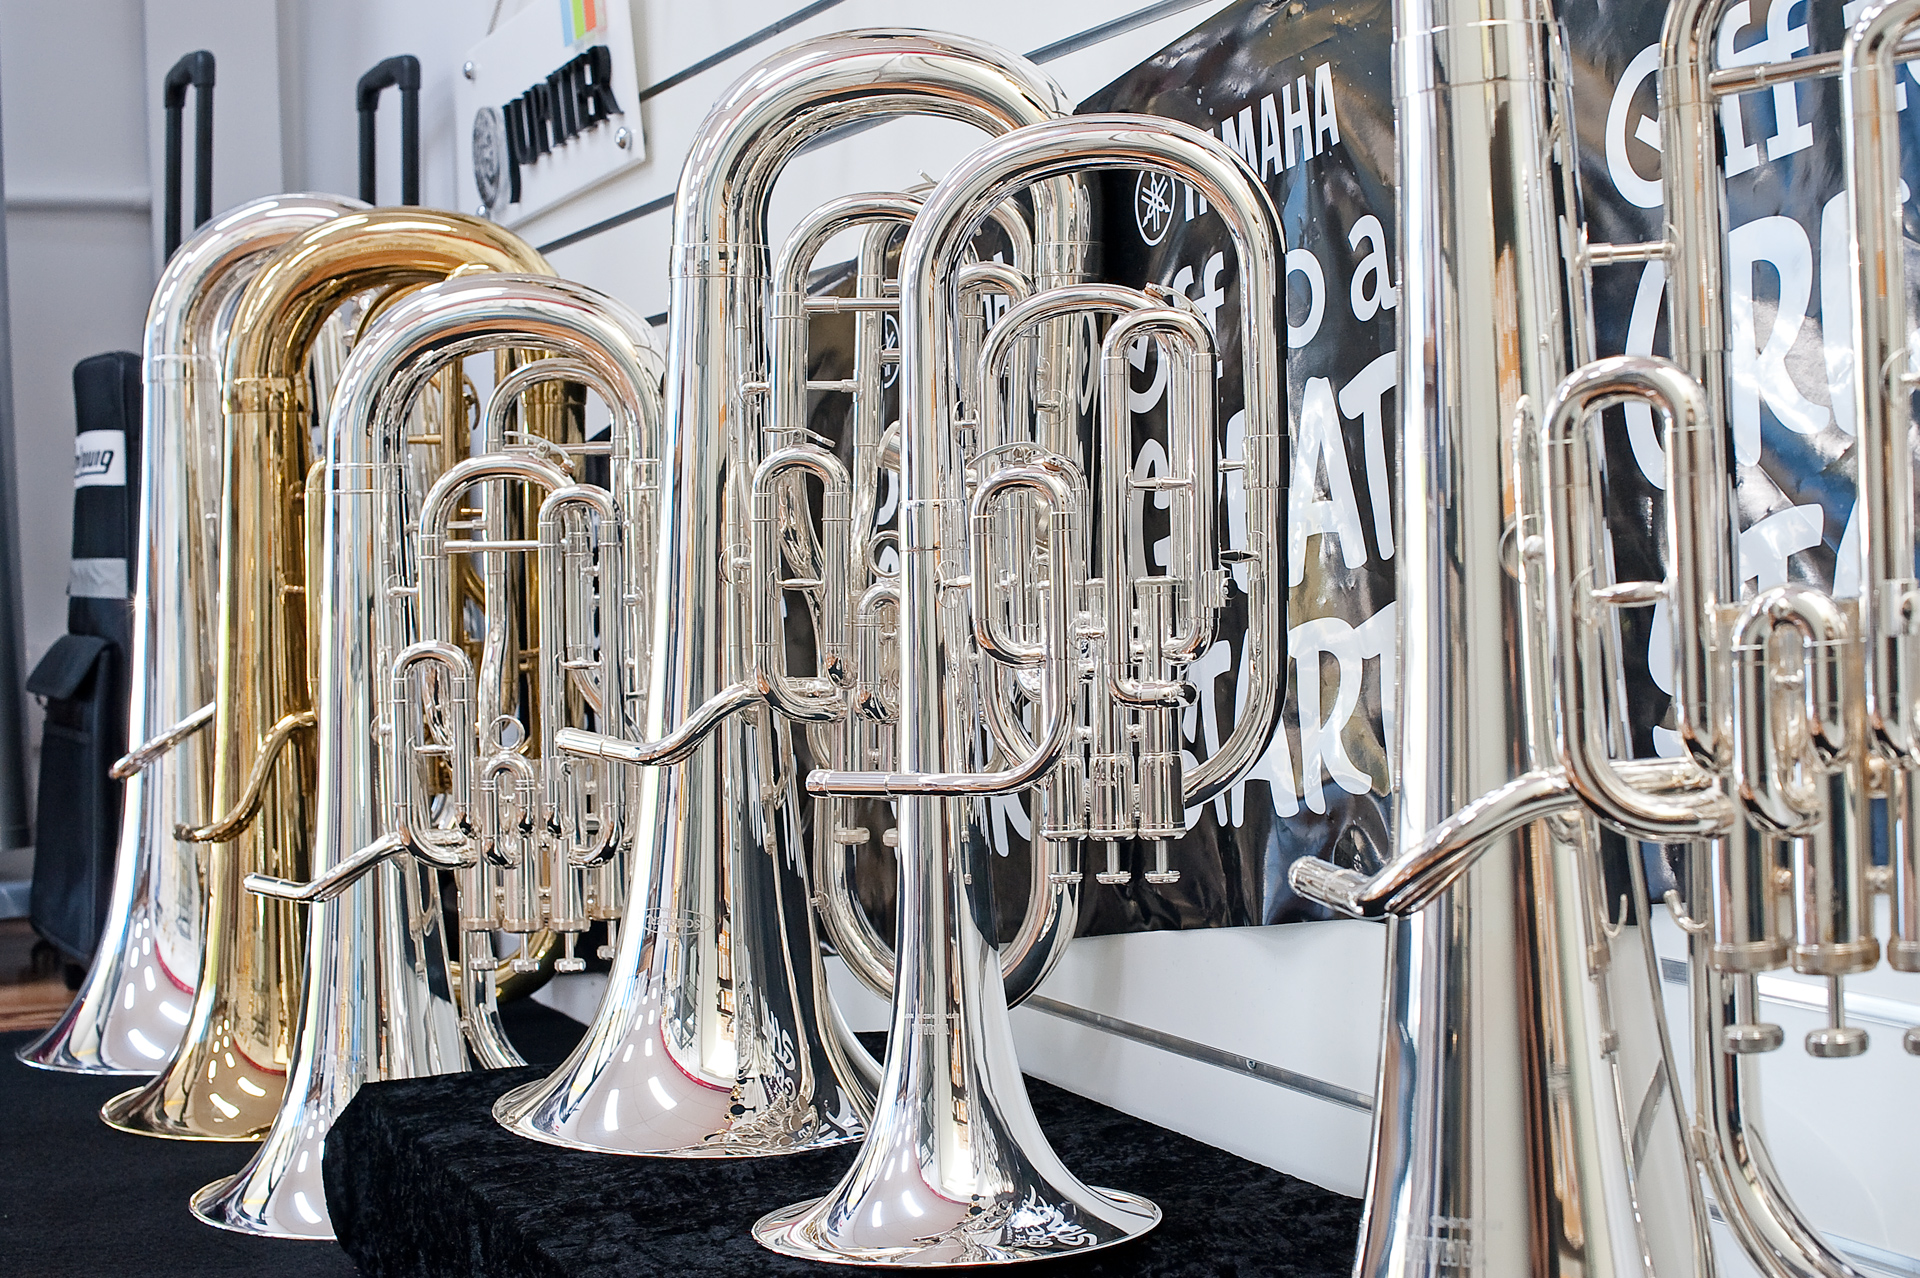 Woodswind and Brass – Woodwind and brass instruments – sales